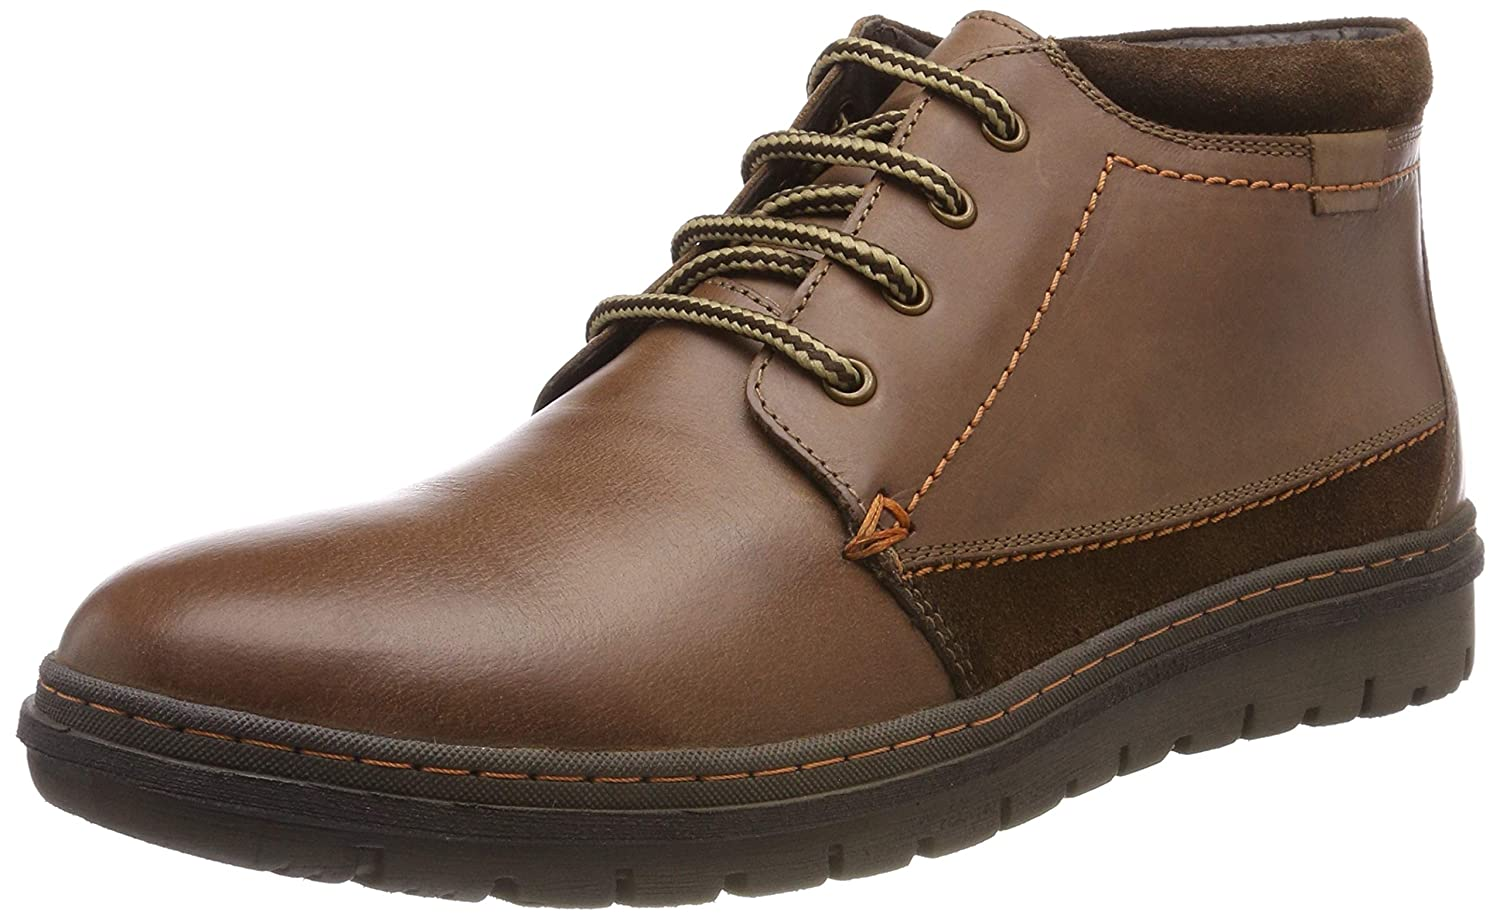 TALLA 43 EU. Hush Puppies Boston, Botas Chukka para Hombre